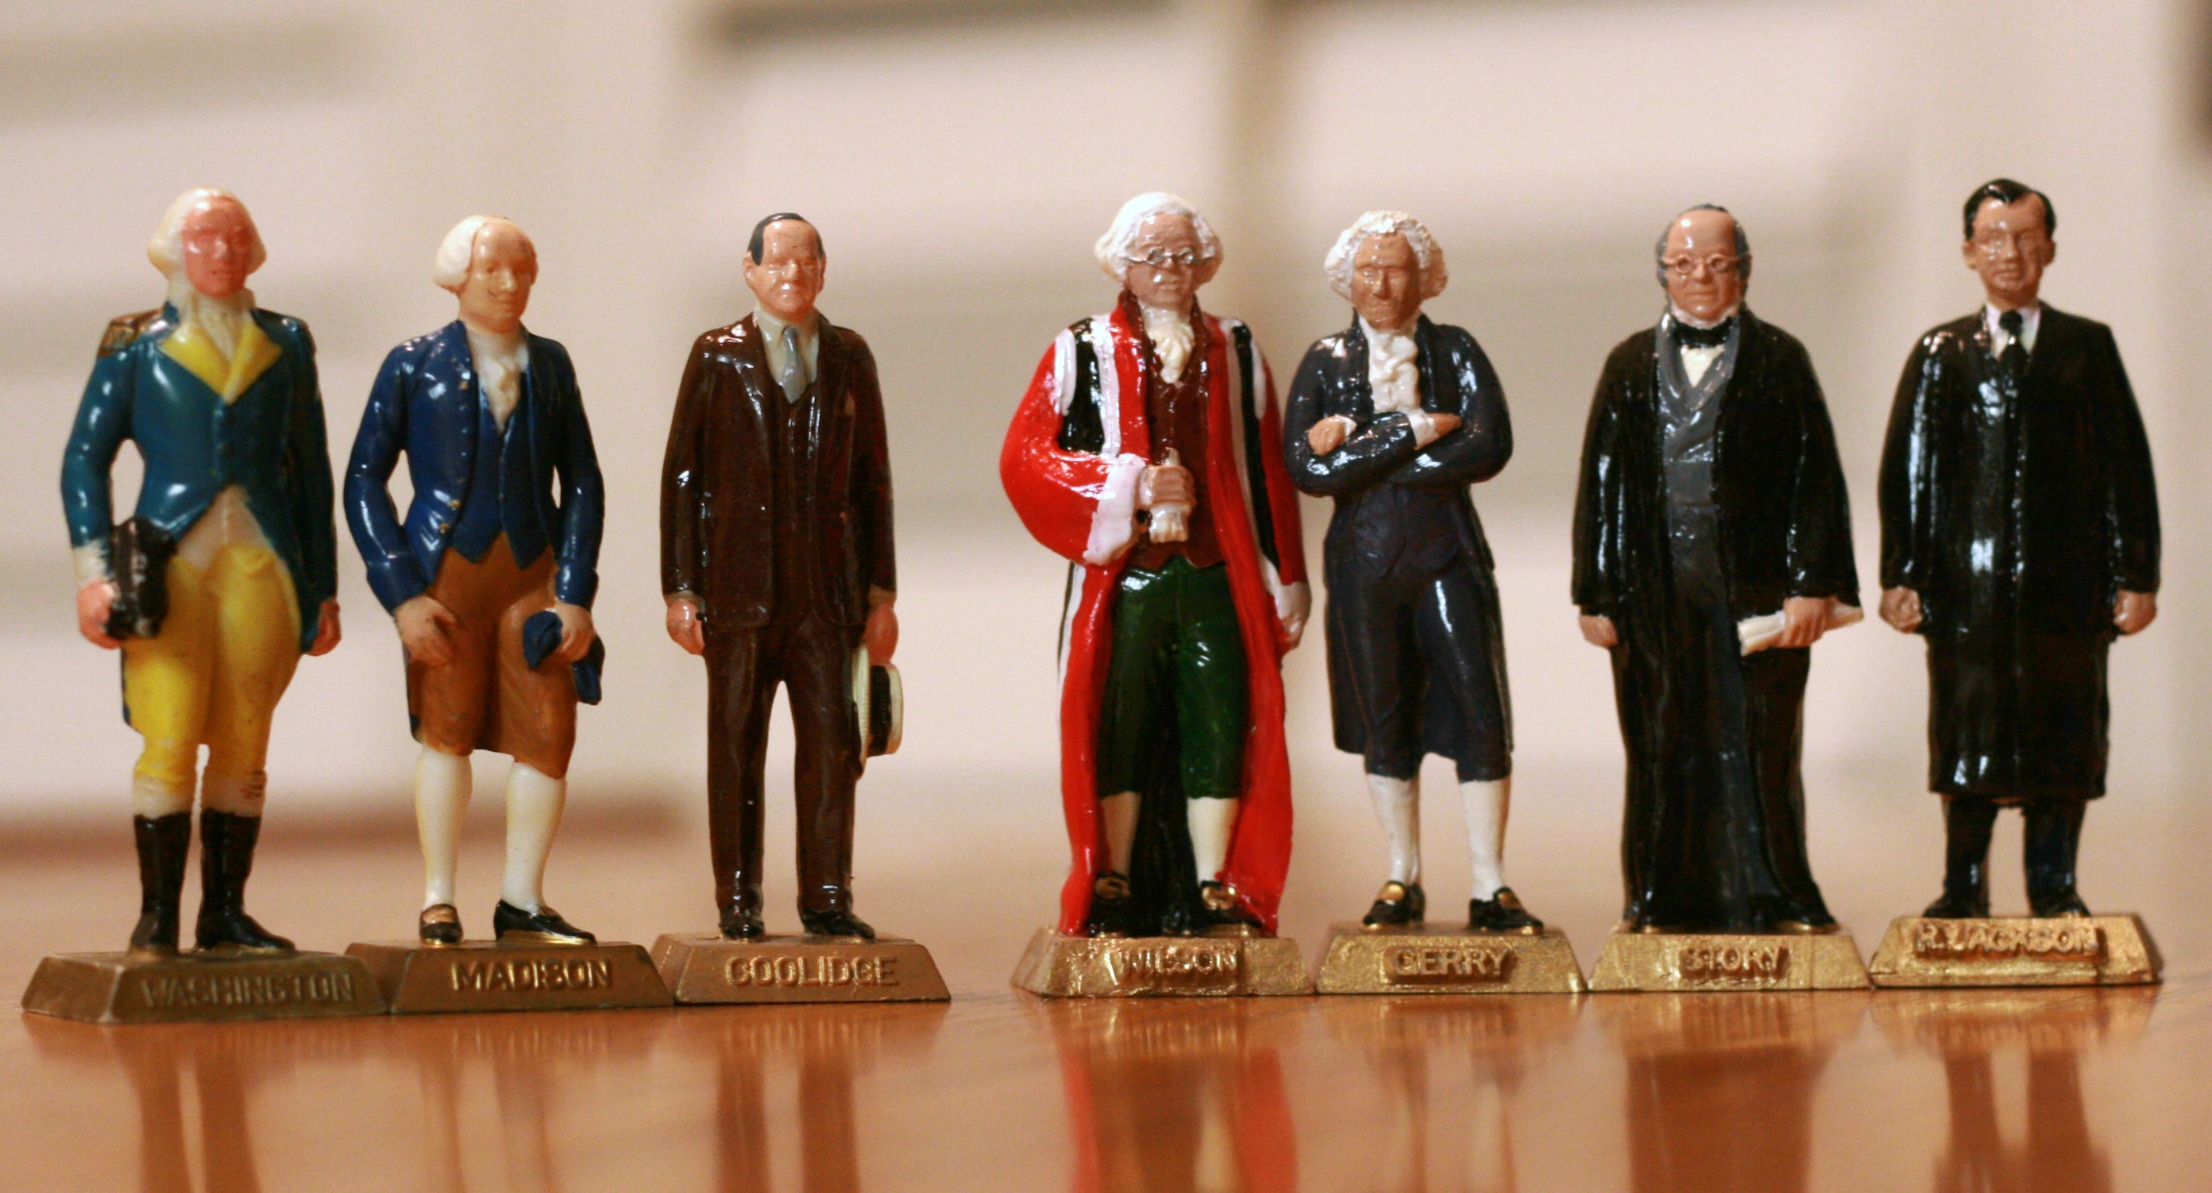 Marx figures: George Washington, James Madison, Calvin Coolidge; Verrone figures: James Wilson, Elbridge Gerry, Joseph Story, Robert Jackson.